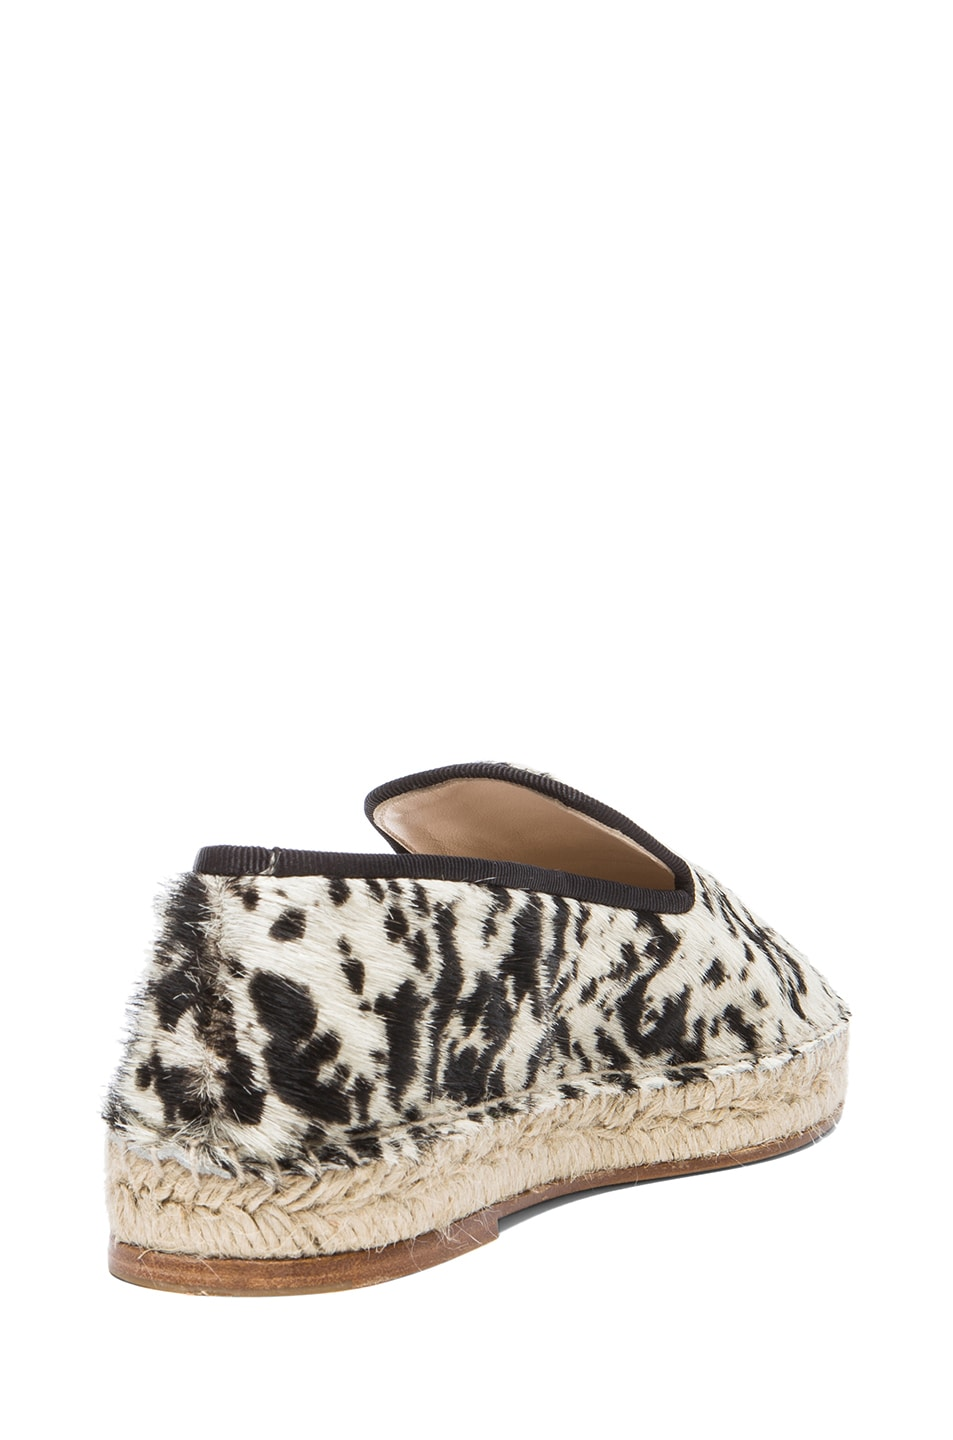 Image 3 of elysewalker los angeles Calf Hair Espadrilles in Gacela